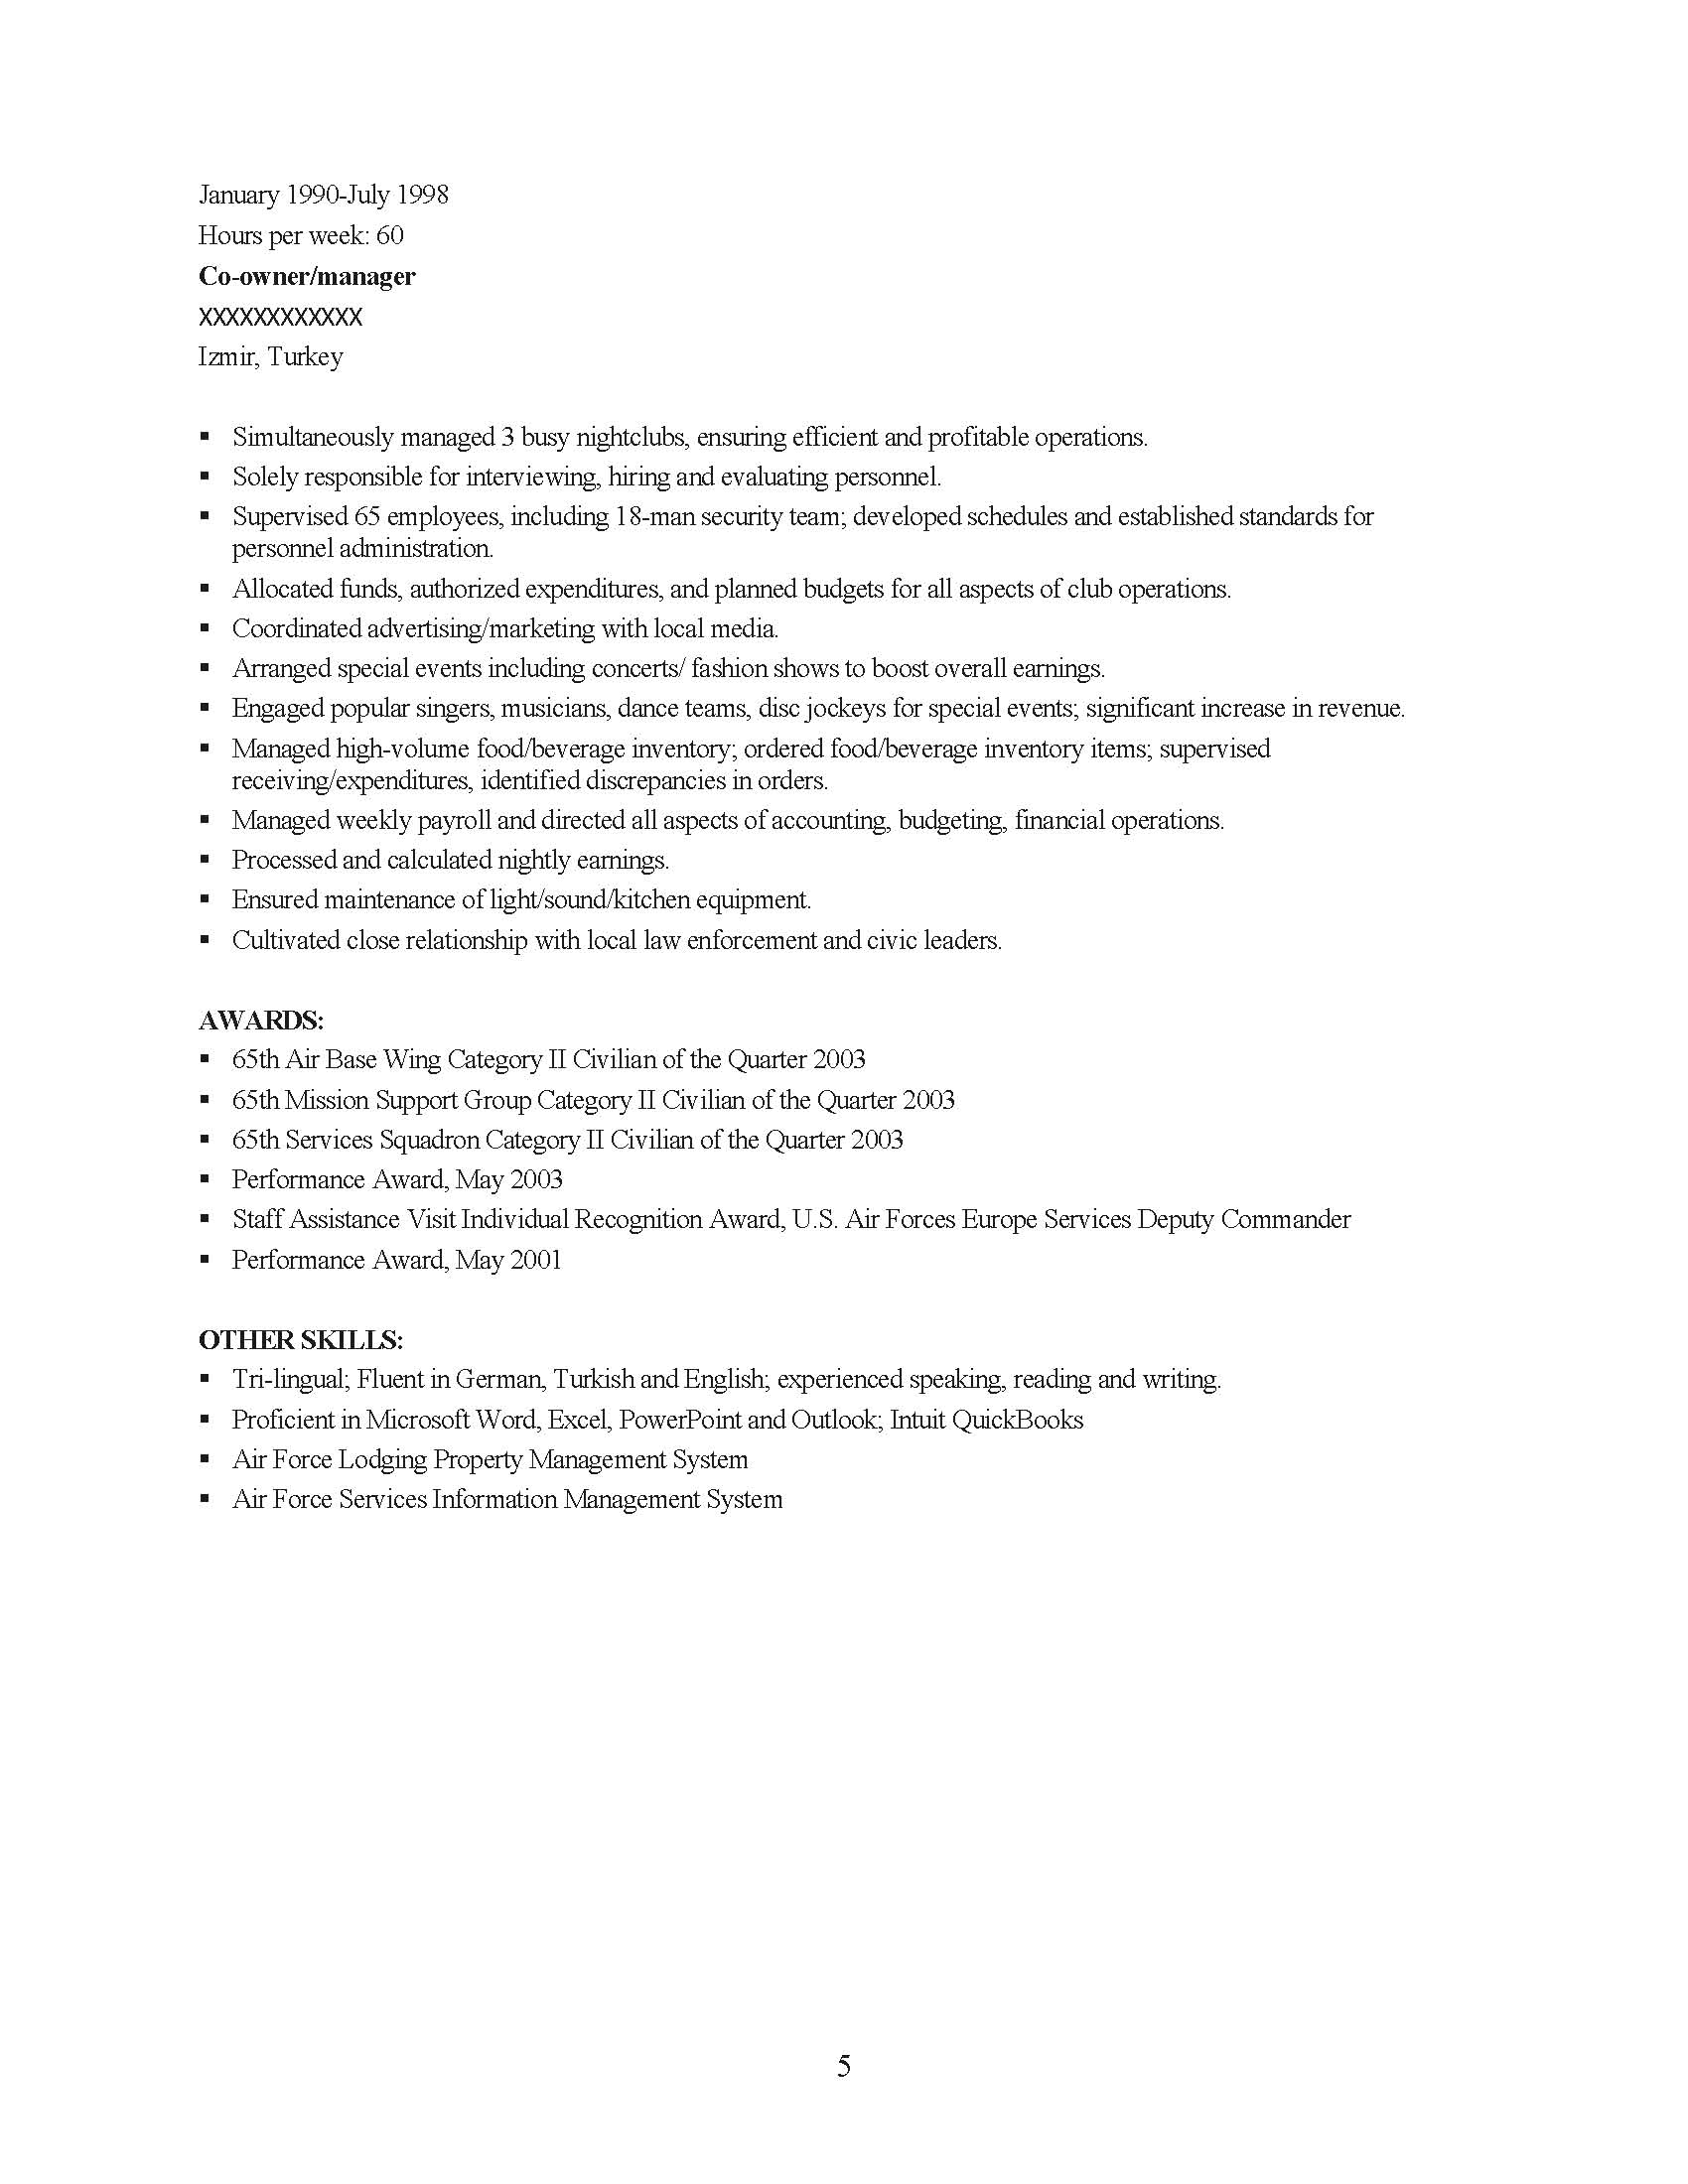 Senior Management Professional Resume Sample - Before-5